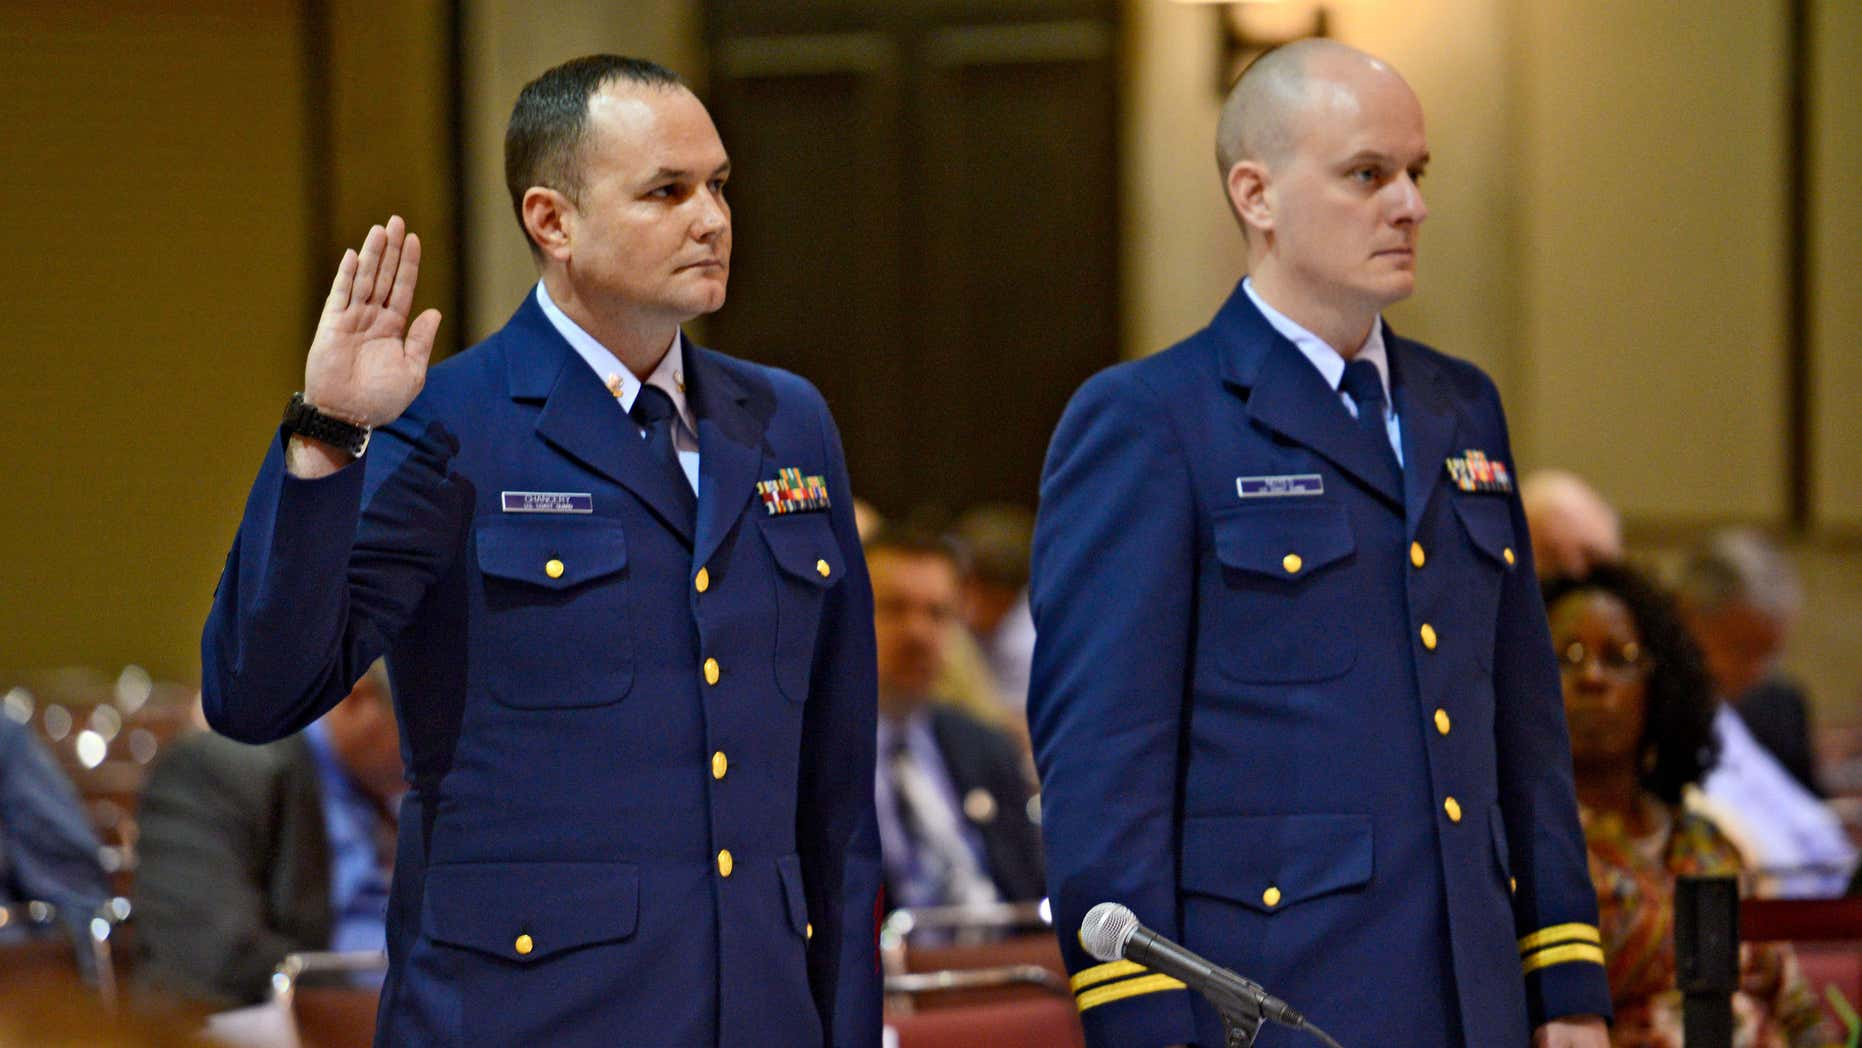 Feb. 24, 2016: OS2 Matthew Chancery, left, U.S. Coast Guard District 7, is sworn in to start the day while standing next to his counsel Lt. Travis Noyes as a U.S. Coast Guard investigative hearing into the sinking of the El Faro continues in Jacksonville, Fla..